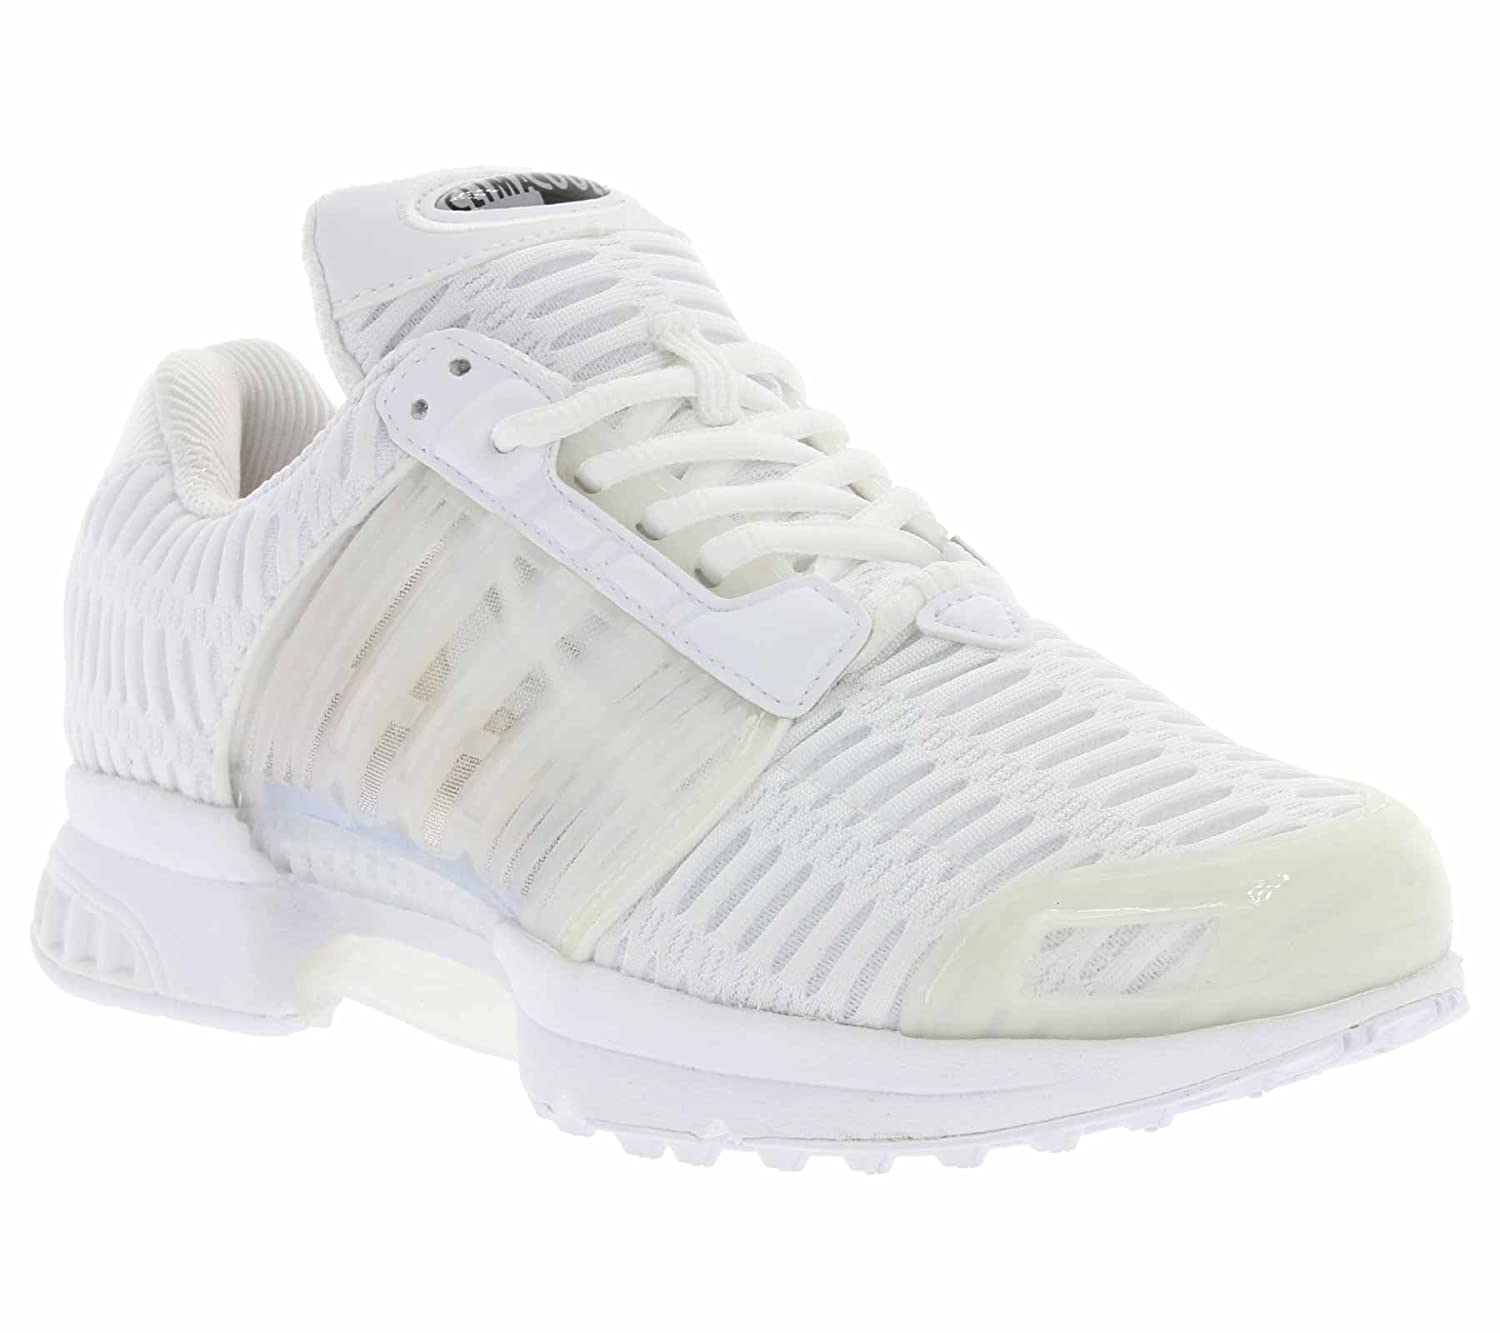 buy popular d3ee5 466b7 adidas Junior Boys Originals Climacool 1 Trainers in White- Climacool  Technology